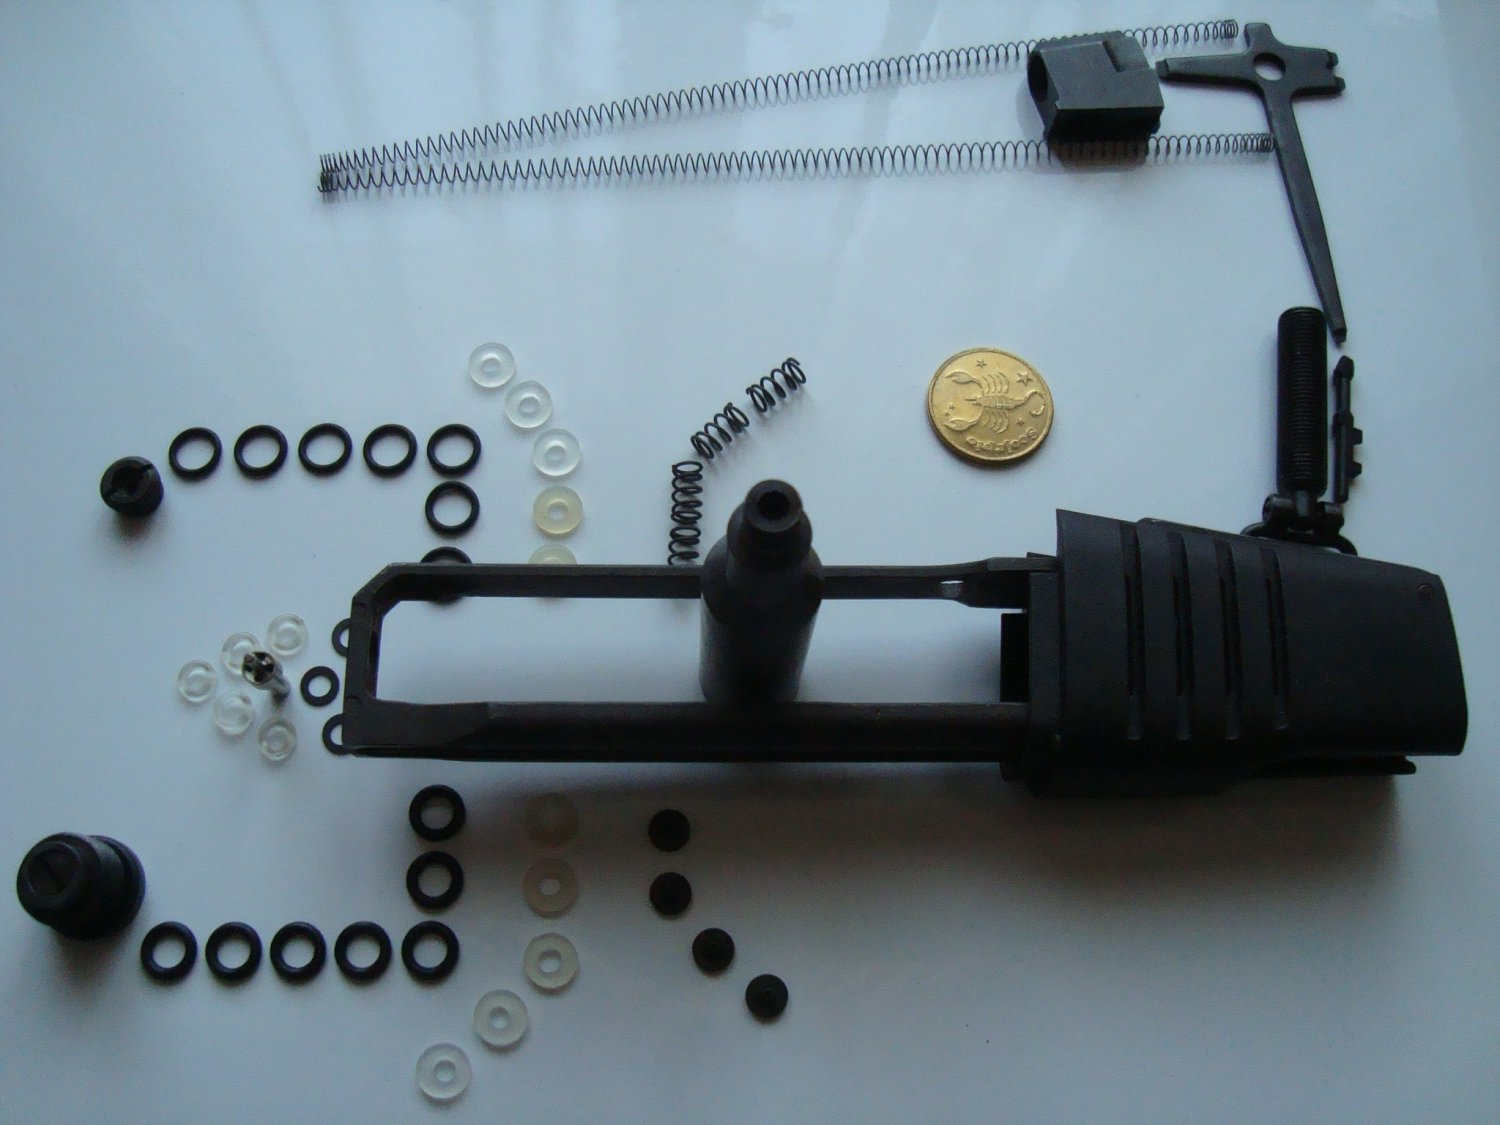 mp-661k magazine seals o-rings, air-bulb, saddle, valve, needle lamp, repair parts for tuning Baikal